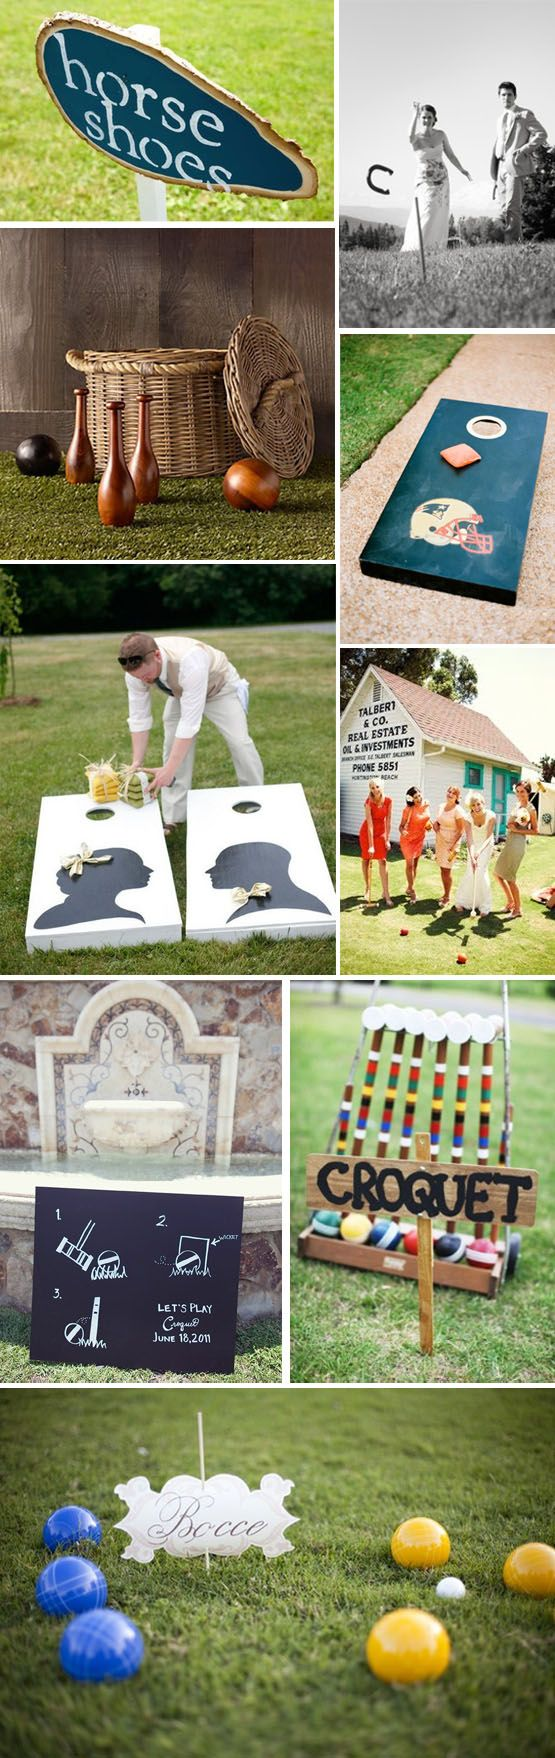 Bridal Bar Blog: Daily Events & Wedding Inspirations in a Blog Format - New Blog - Outdoor Wedding Games